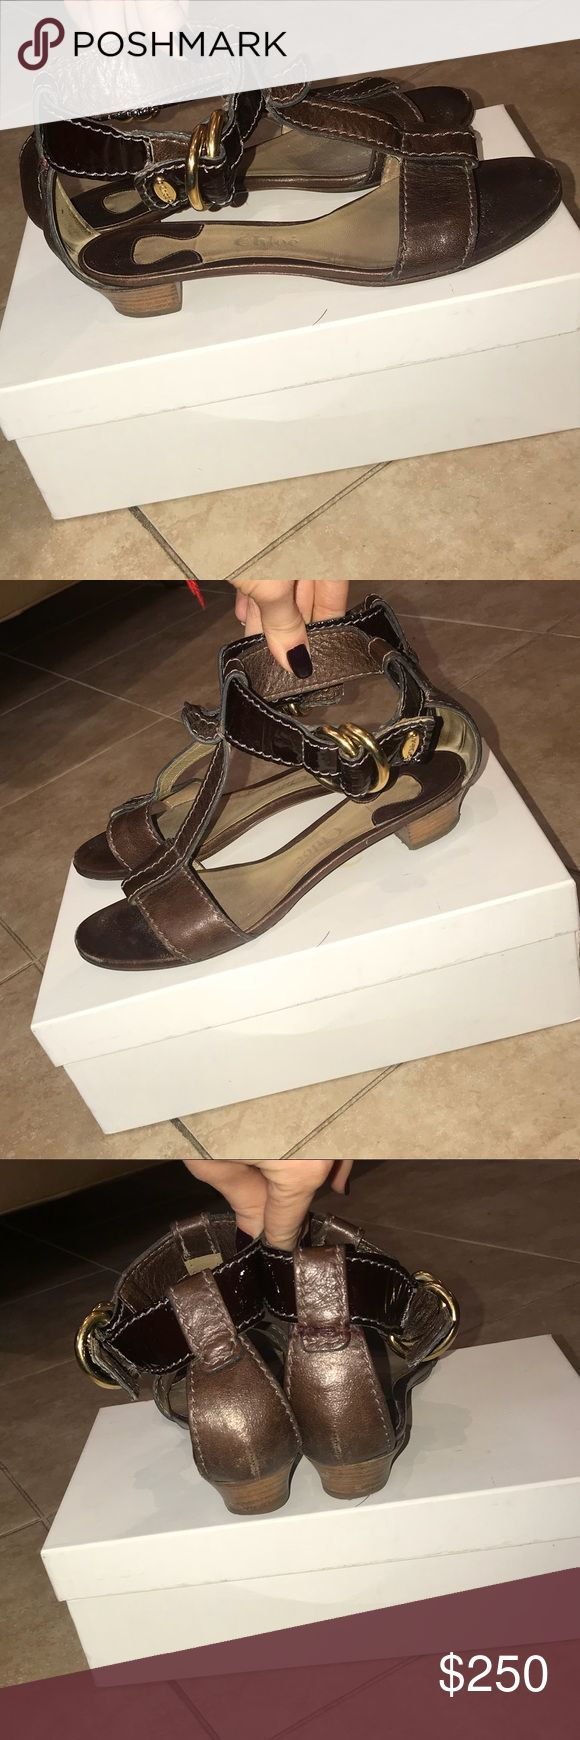 Chloe Brown Leather Sandals Size 37 Chloe Wing Calf Sandals with Gold Buckle Detailing Size 37 Color Dark Brown Made in Italy In great condition! Will accept reasonable offers! Chloe Shoes Sandals